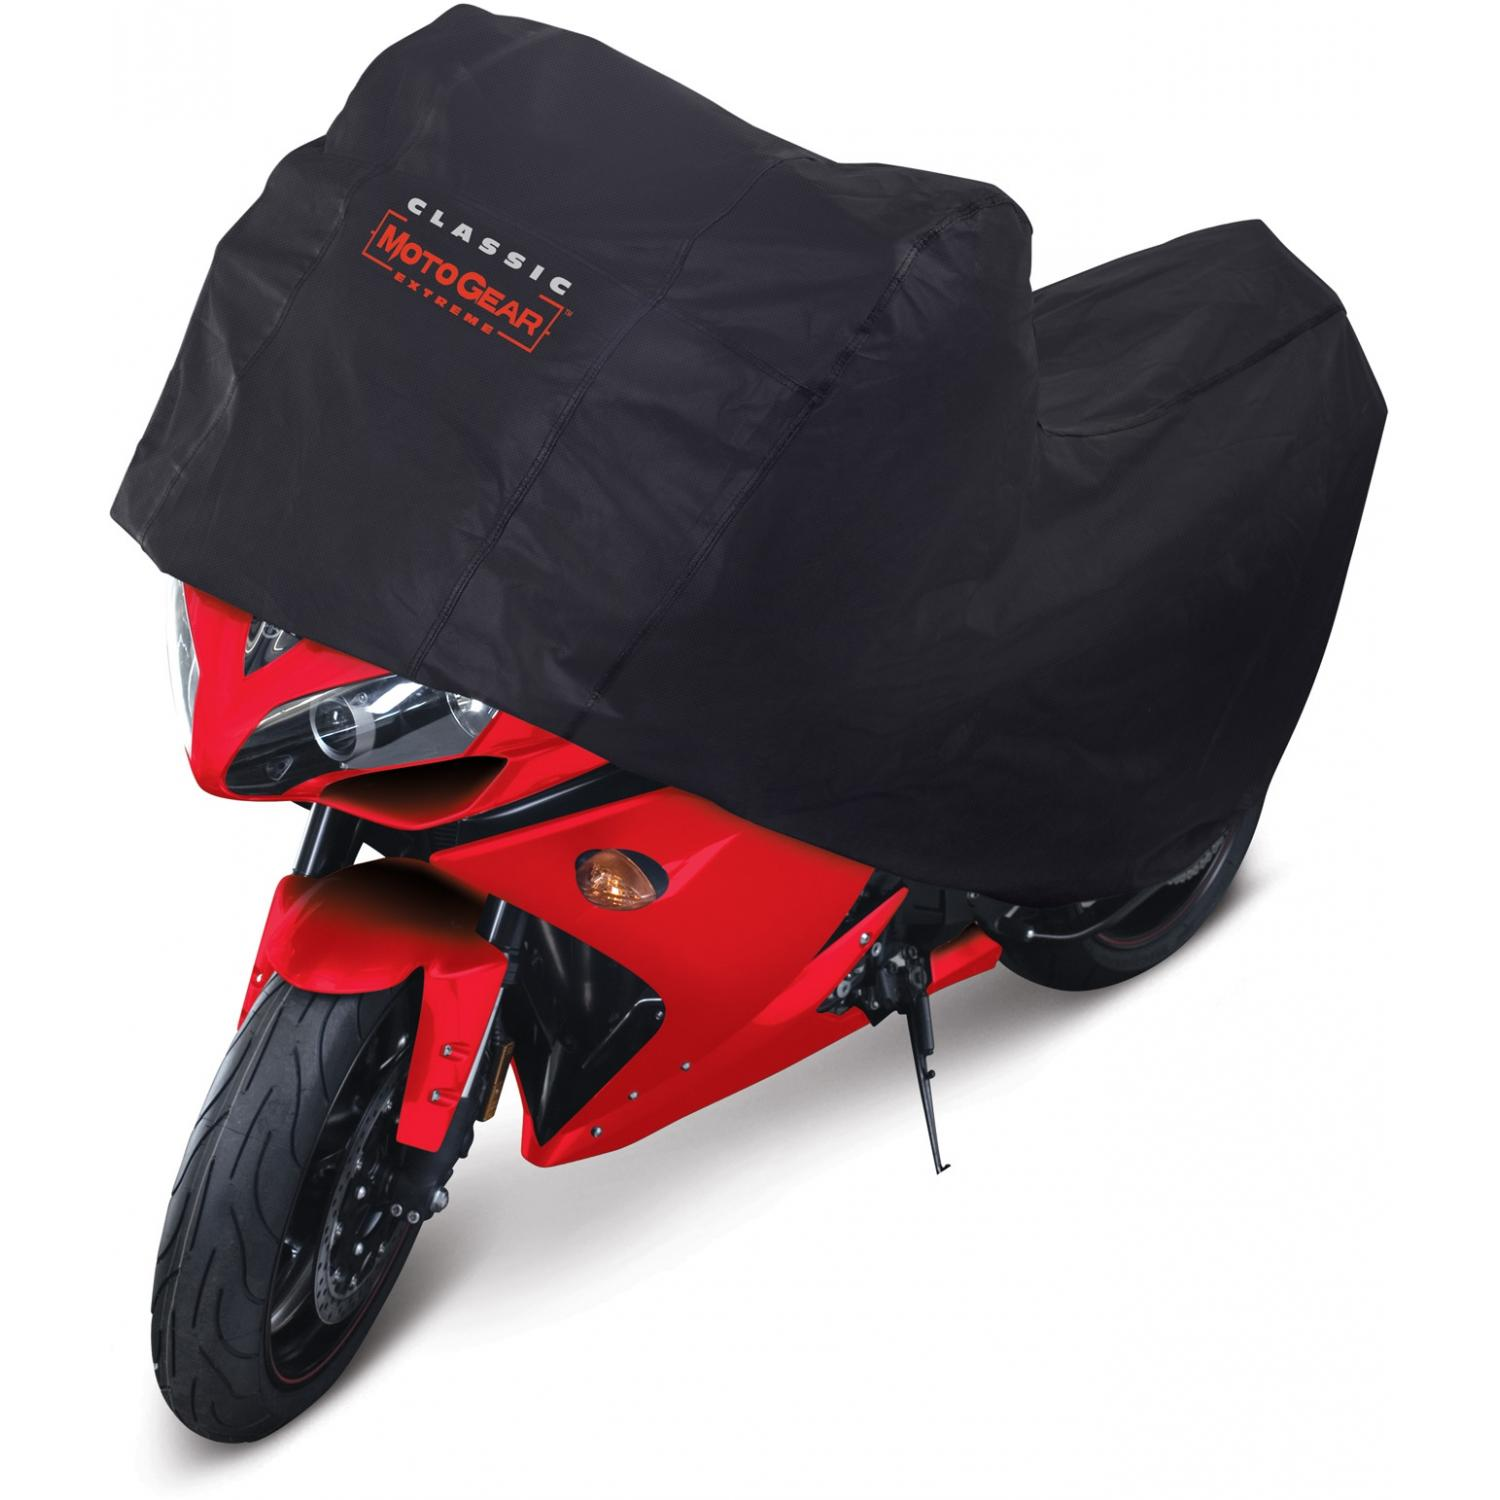 Classic Accessories MotoGear Deluxe Motorcycle Cover - Black - Sport